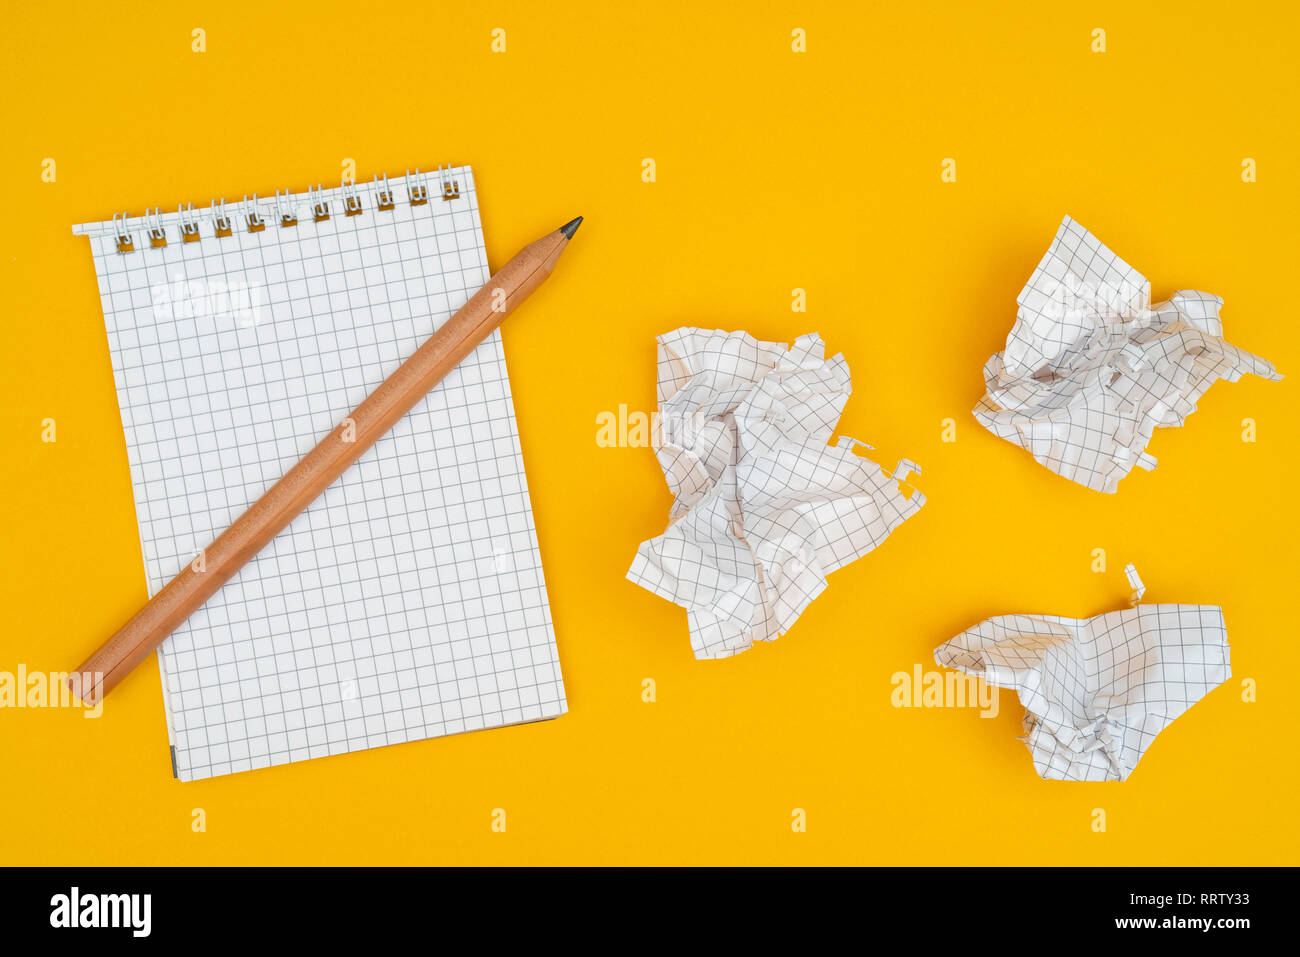 Pencil, notebook and crumpled sheets of paper. - Stock Image